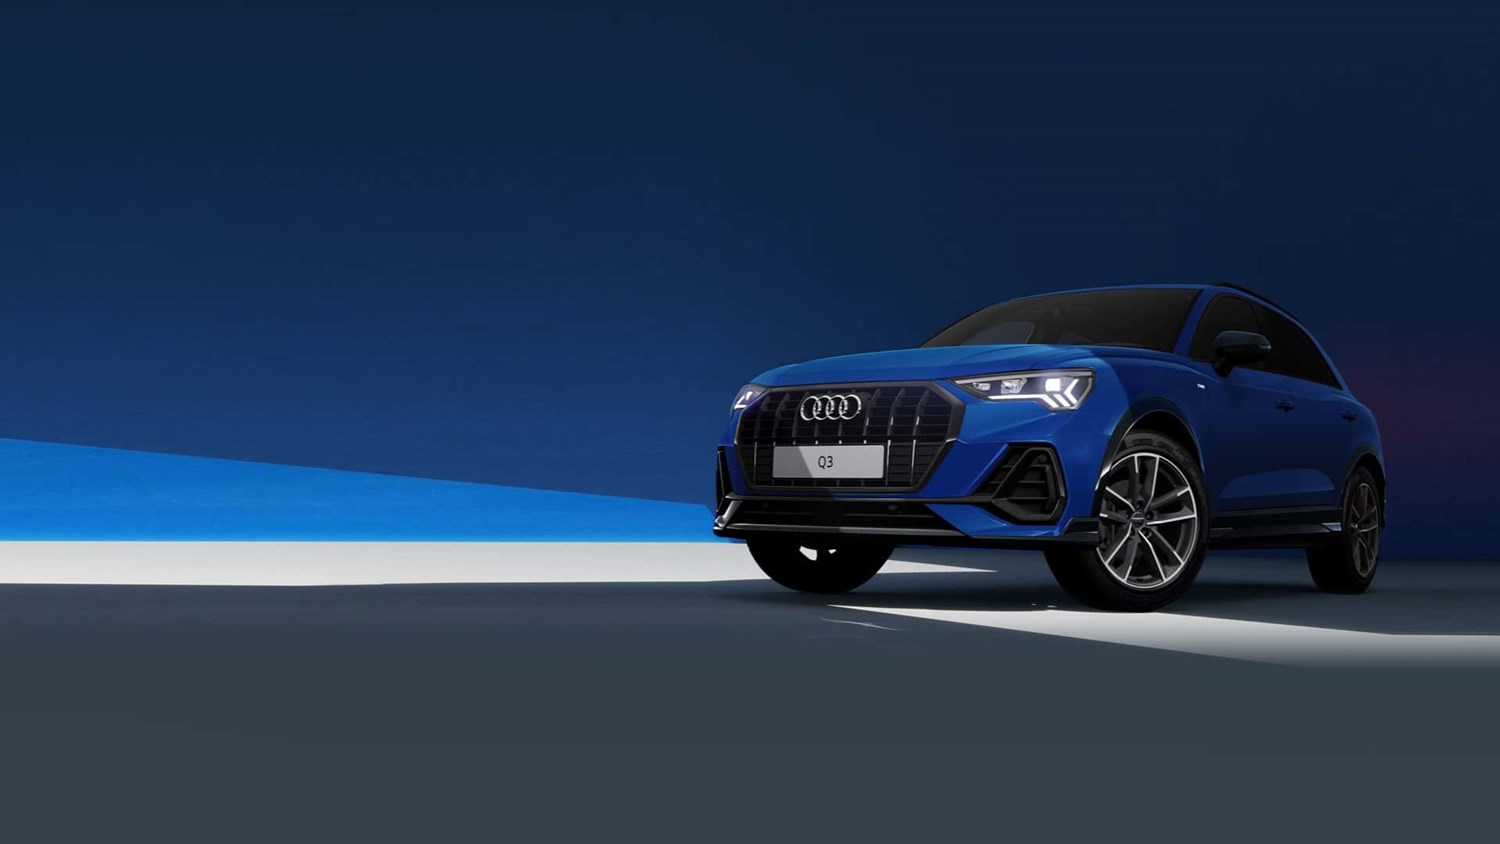 Audi Q3 Black edition in blue with blue and grey background